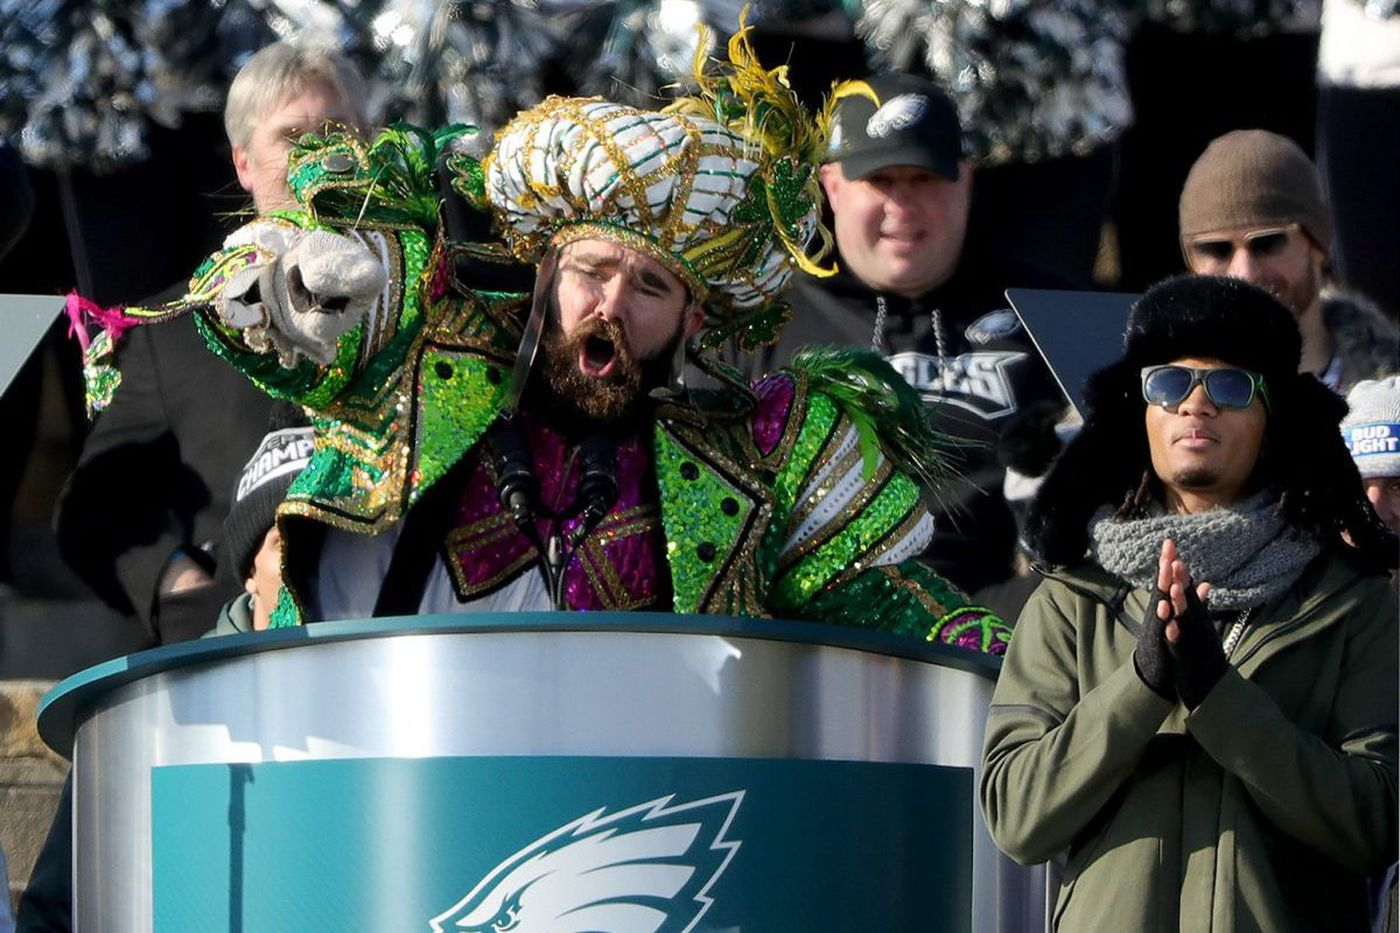 Jason Kelce's 'No One Likes Us' chant at Eagles parade comes from soccer